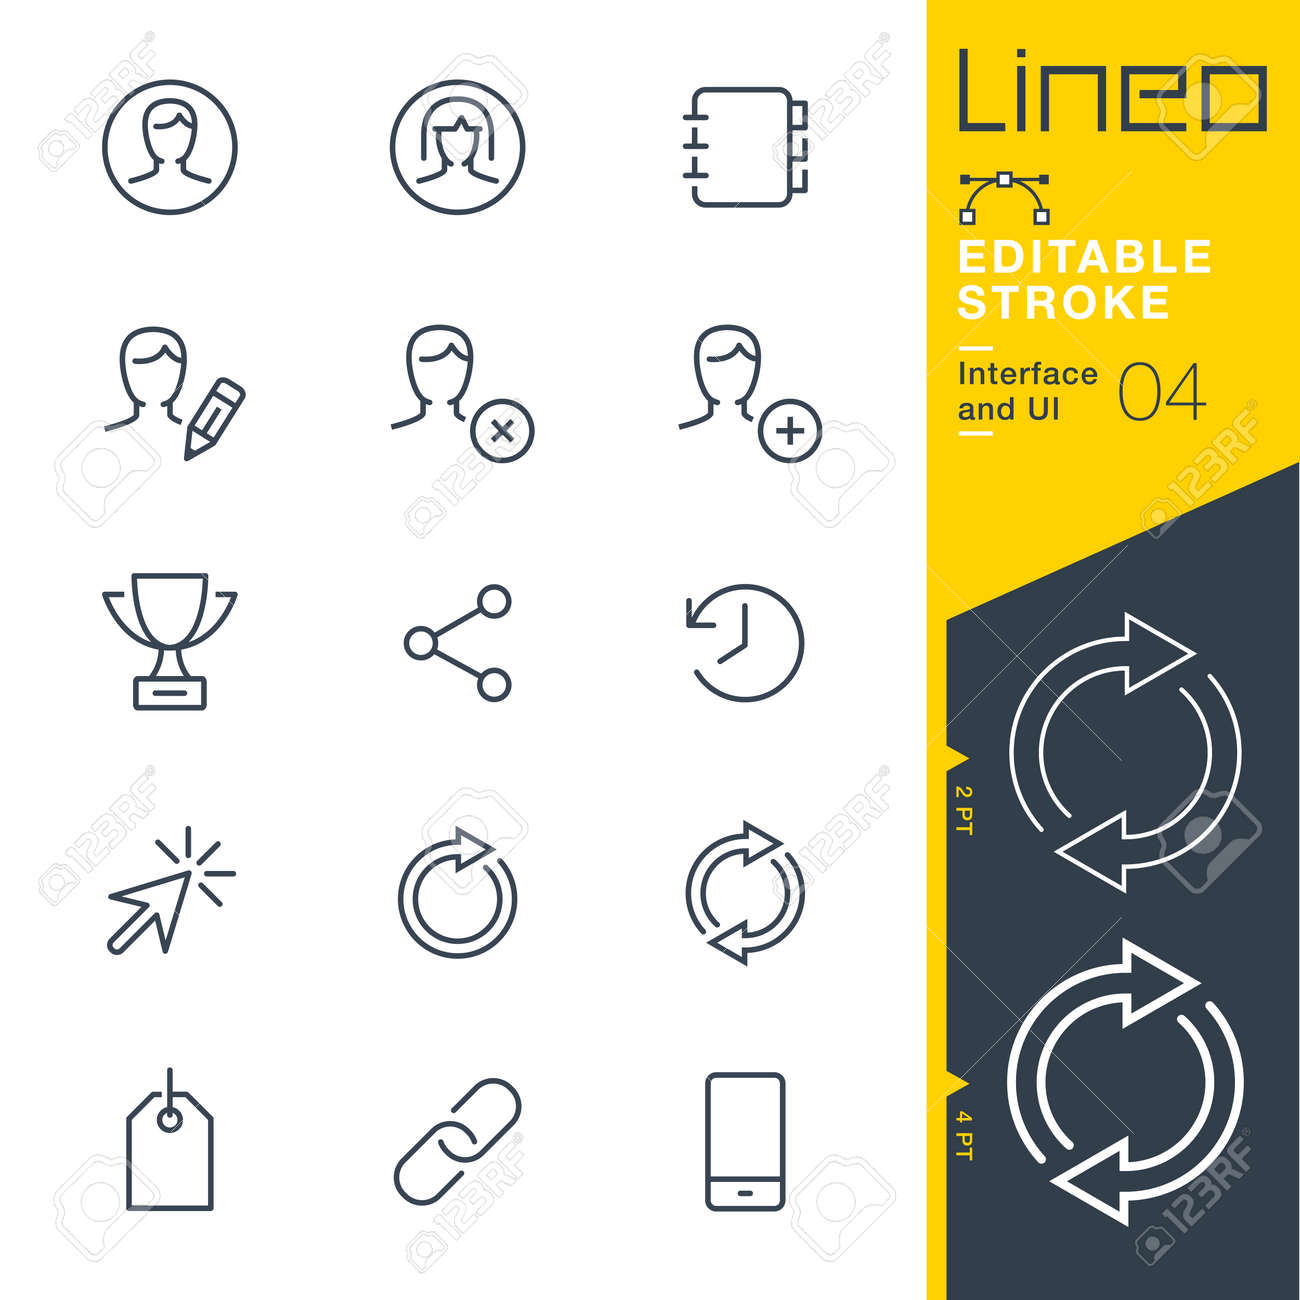 Lineo Editable Stroke - Interface and UI line icon Vector Icons - Adjust stroke weight - Change to any color - 86959604